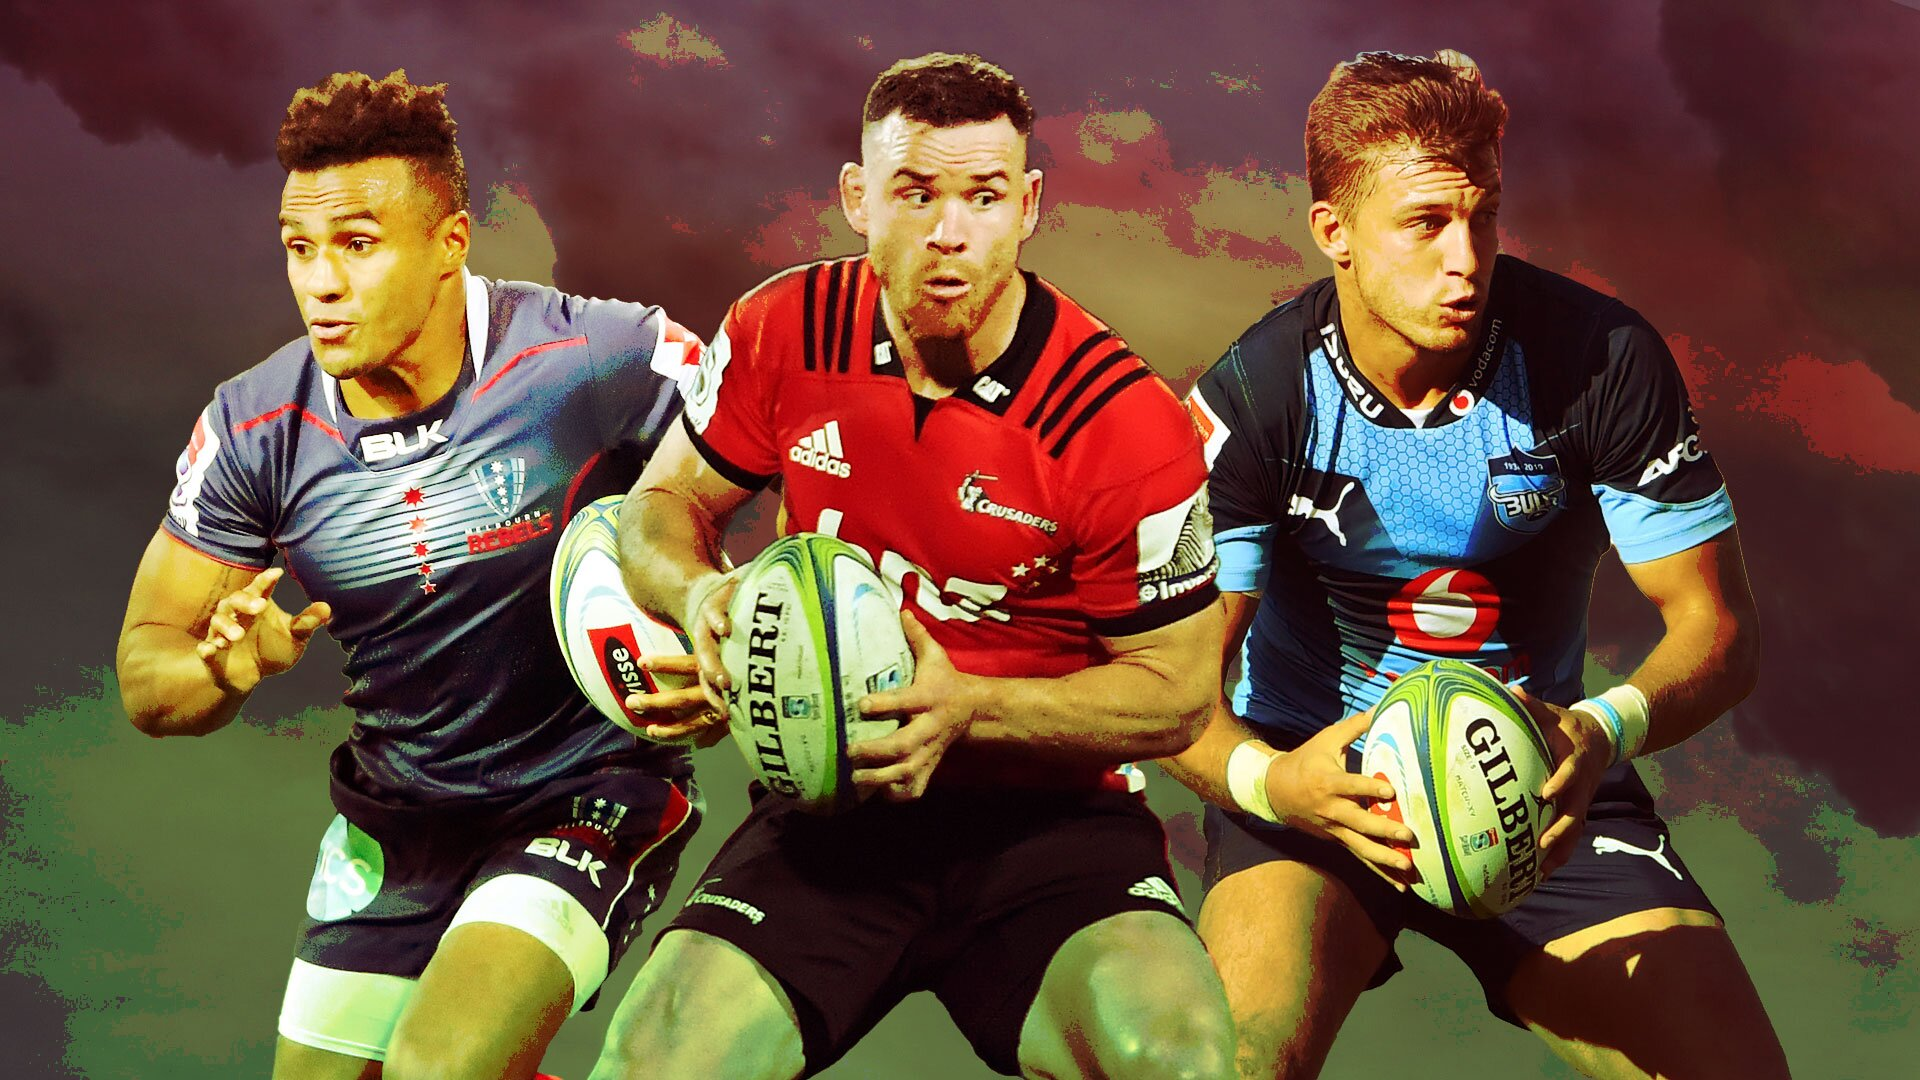 Is this the most competitive season of Super Rugby we've ever had?